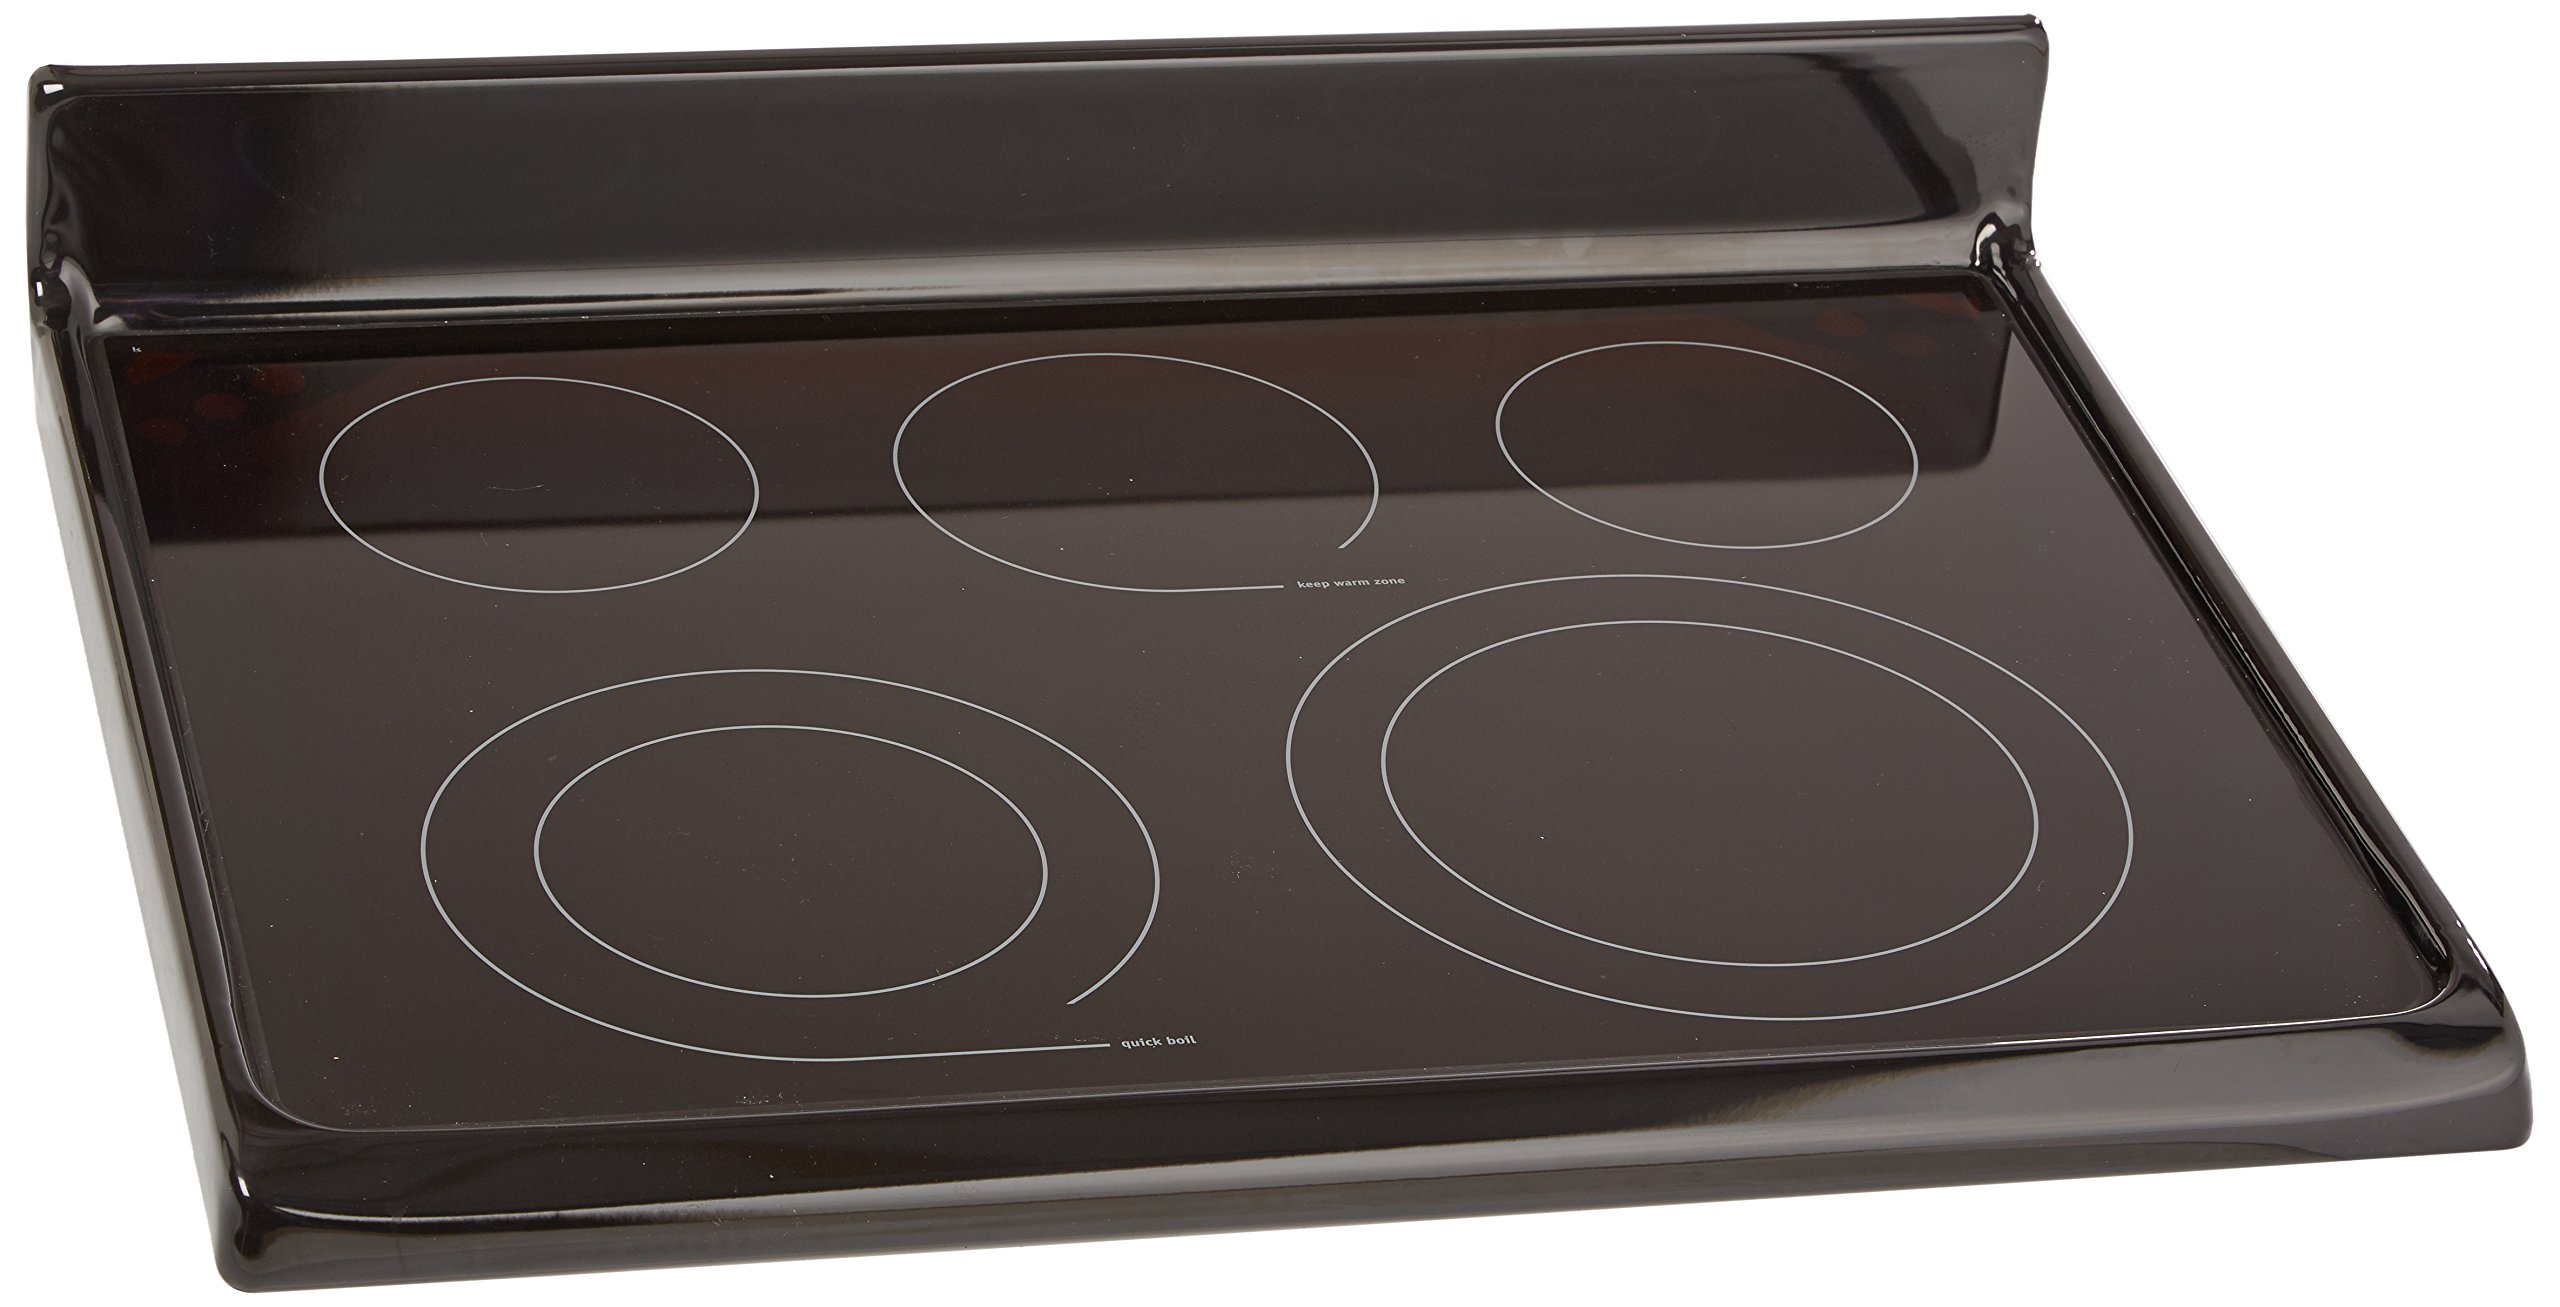 Frigidaire 316531953 Glass Cooktop Range/Stove/Oven by Frigidaire